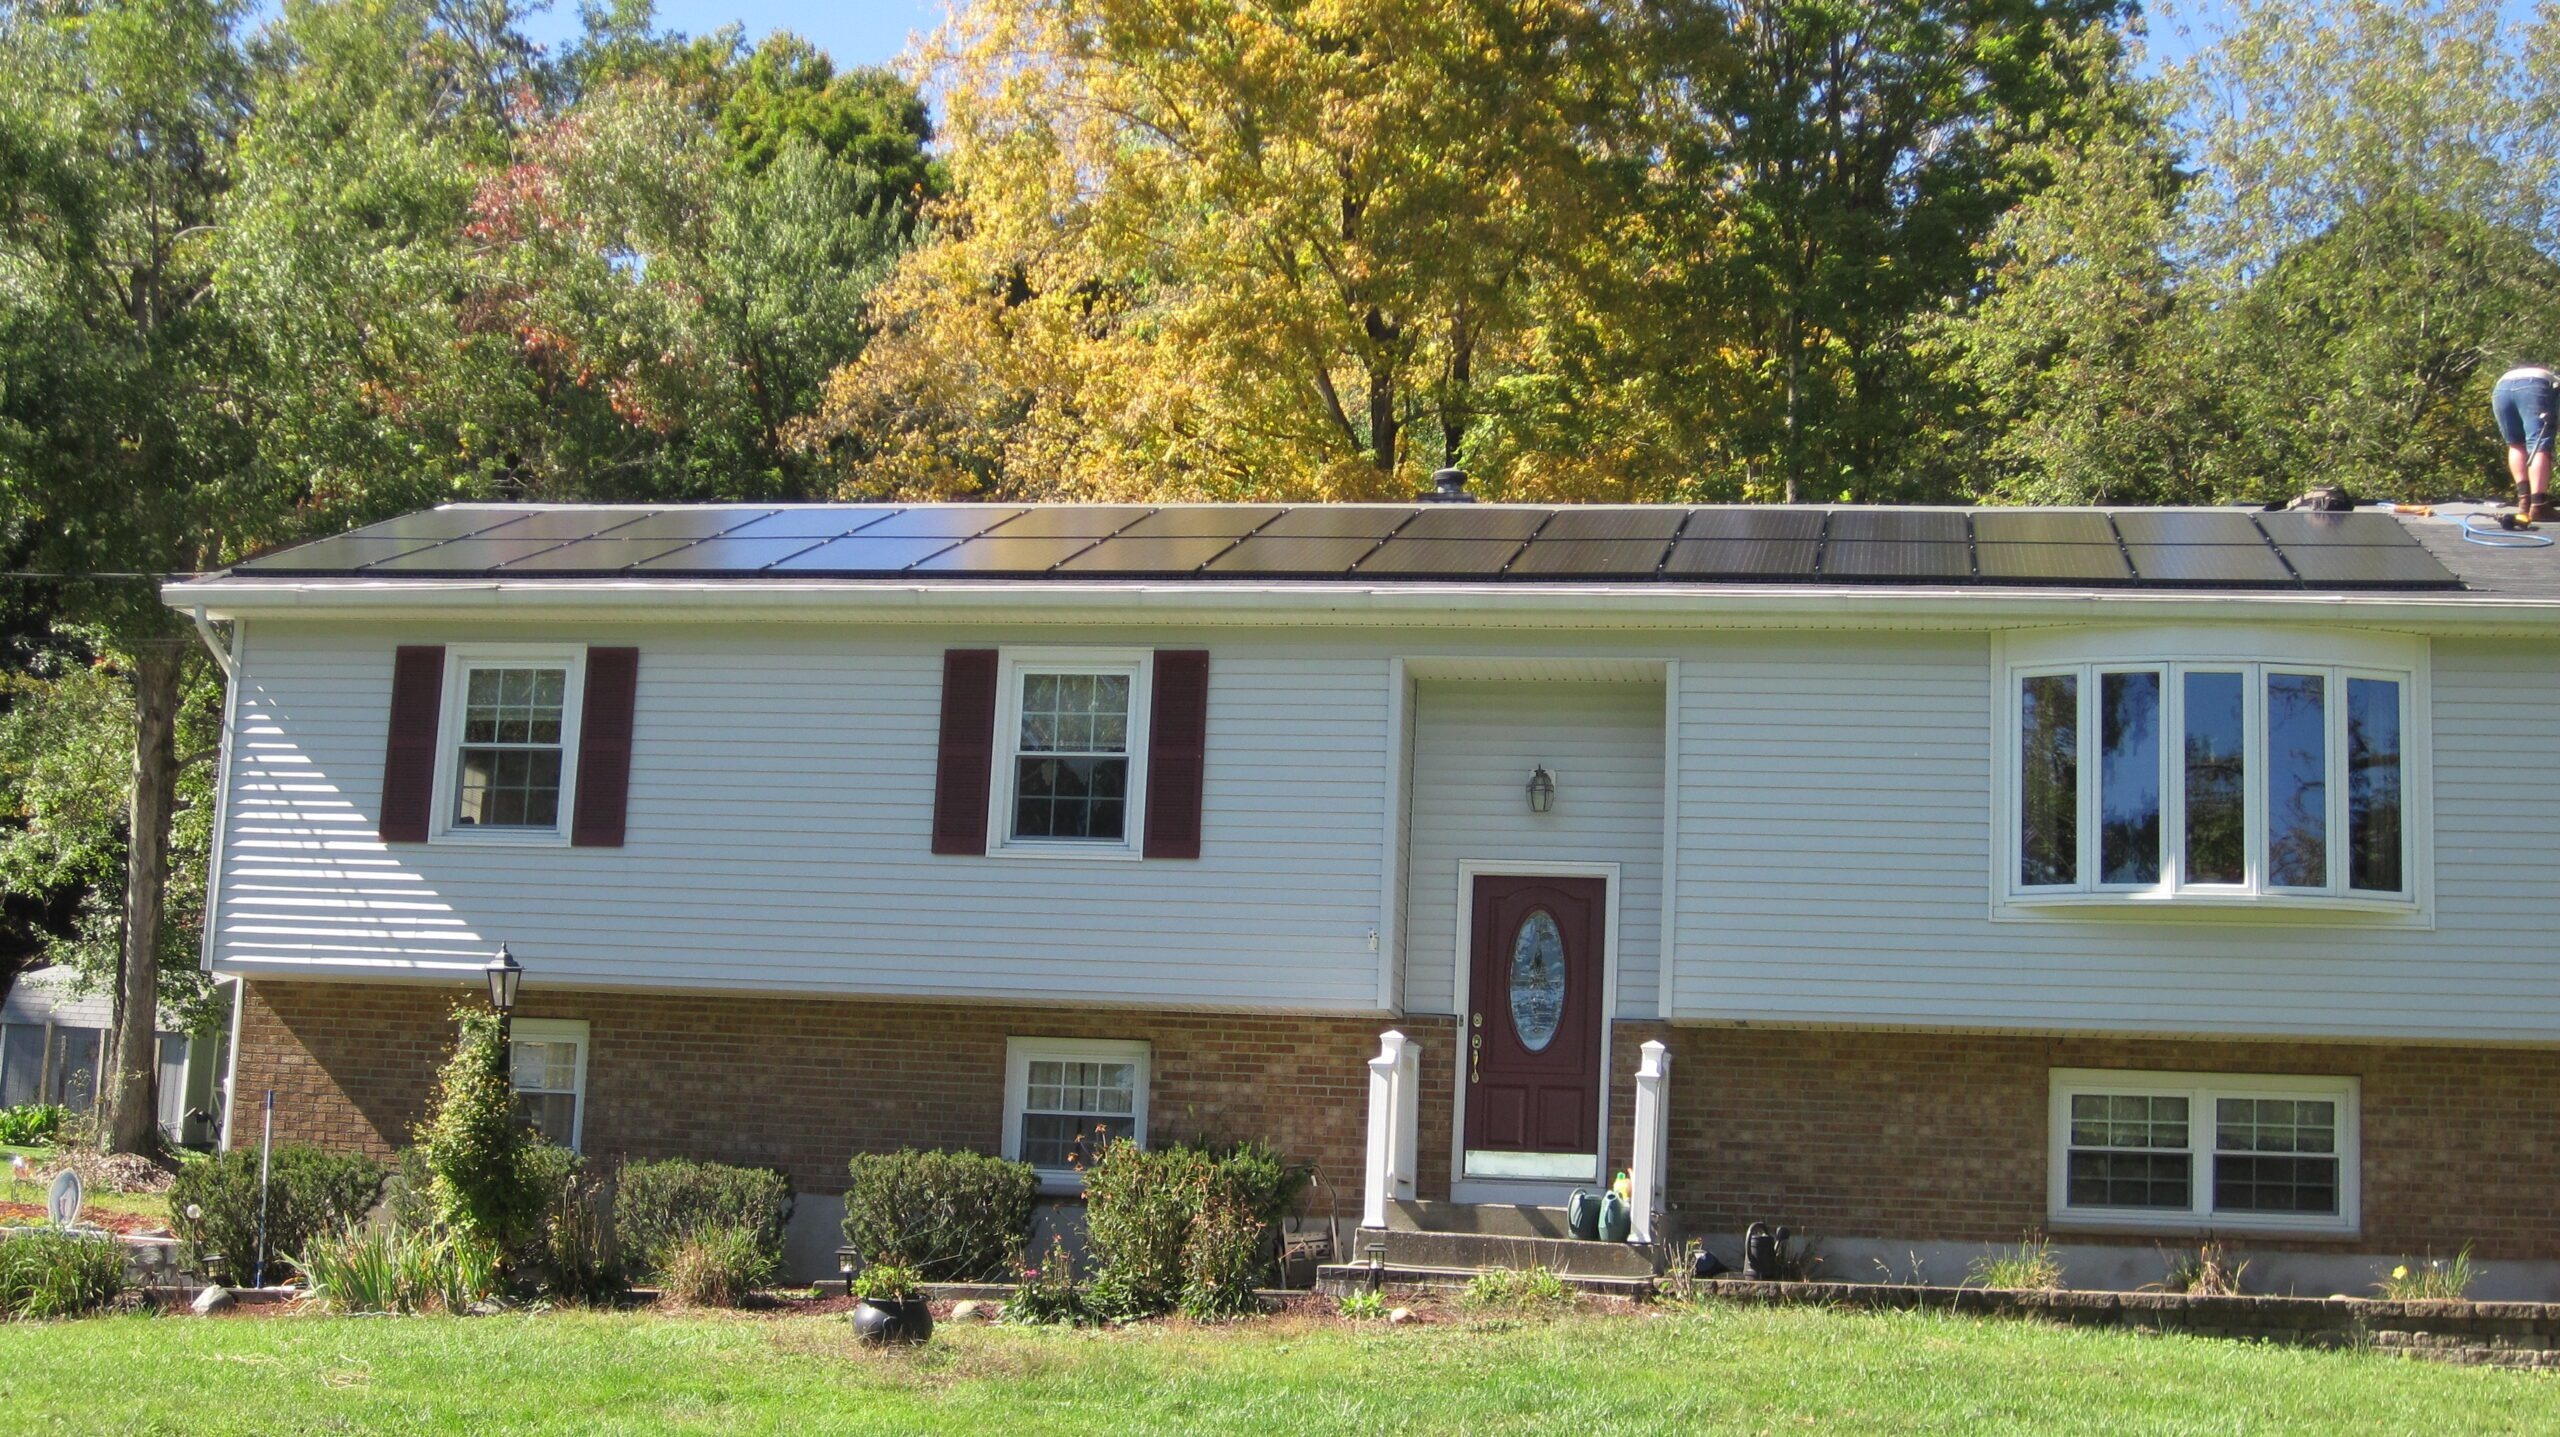 EZ Roof Mounting System/ Roof Integrated - Wappingers Falls, NY - Wappingers Falls, NY